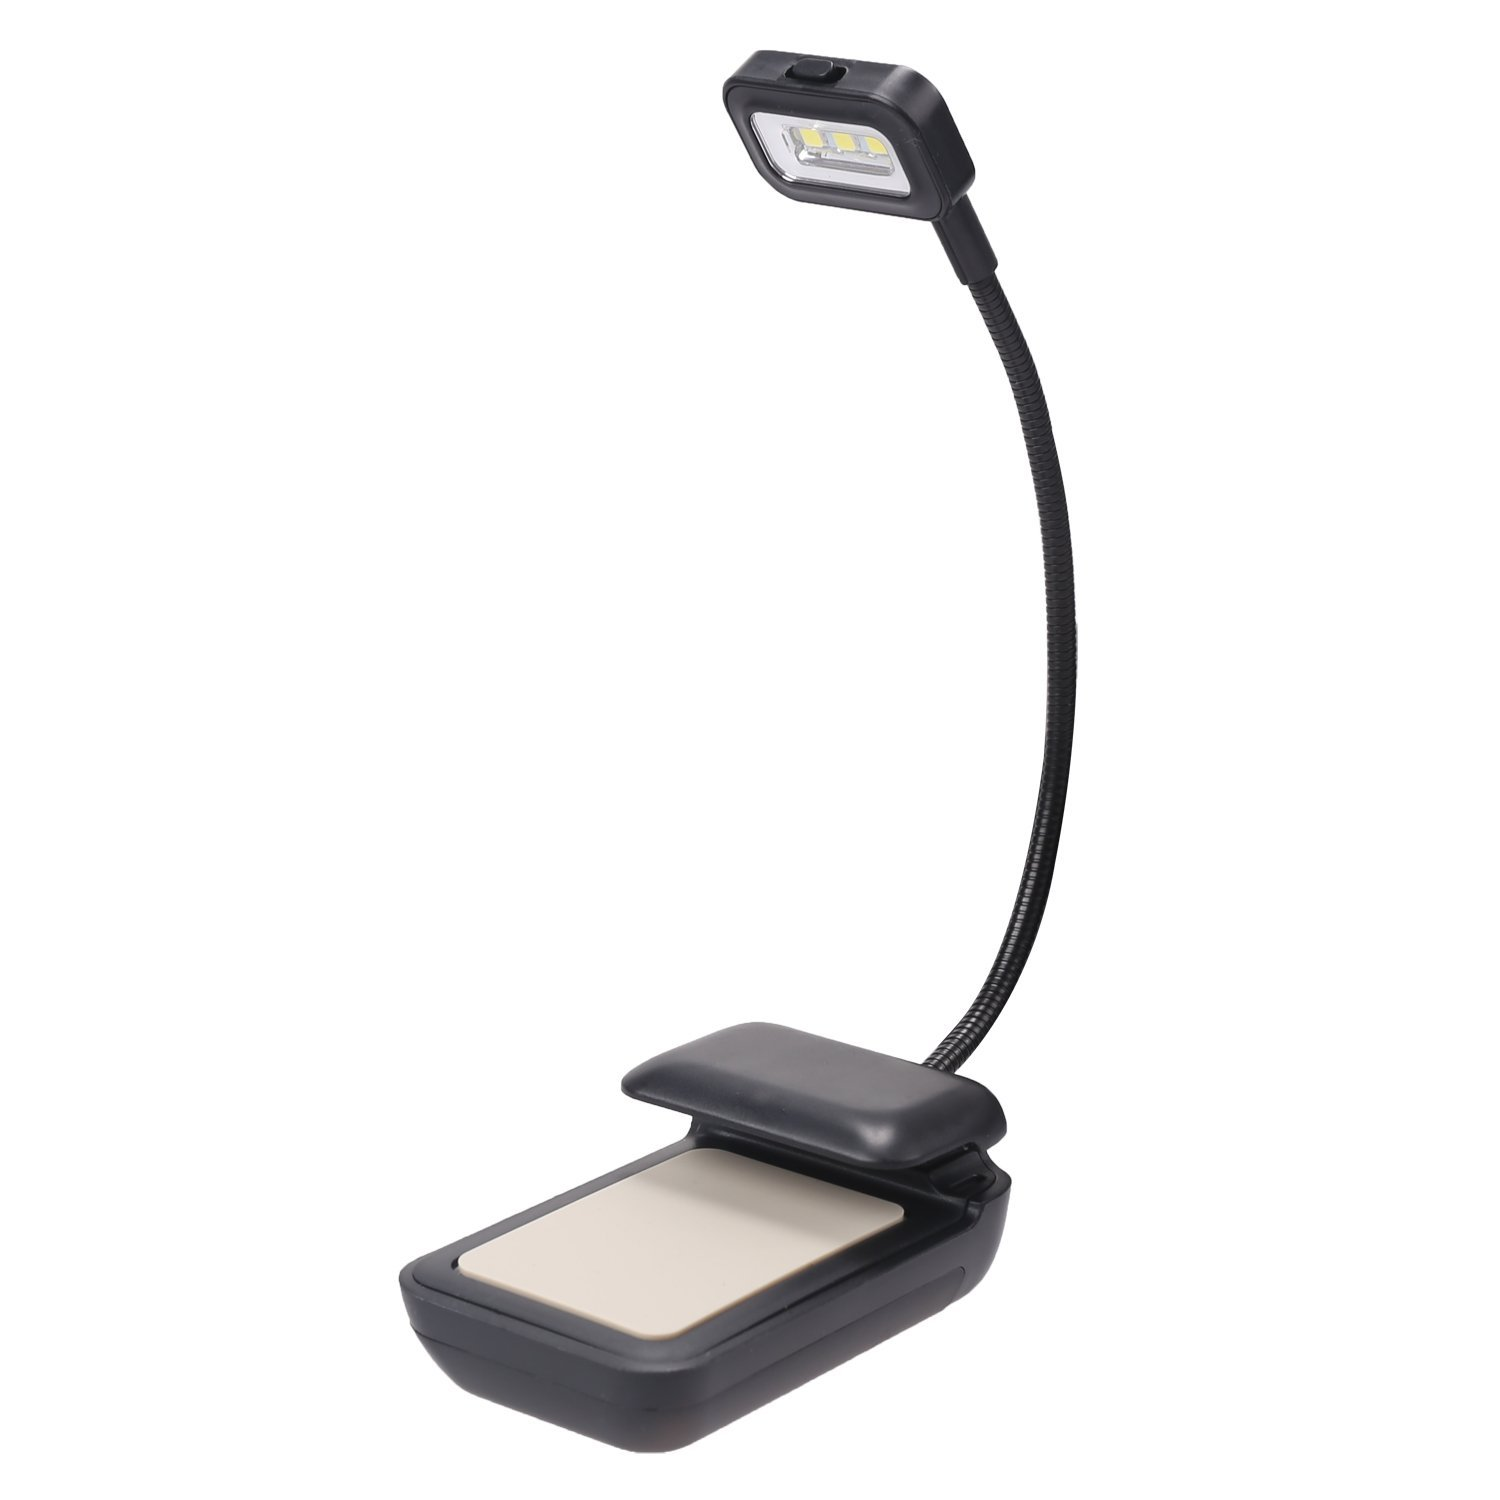 LEADSTAR LED Clip-On Reading Light Lamp for eBook Reader, Nook, Tablets, Book, Textbook, PDAs, Cell Phones, e-Link Display Device